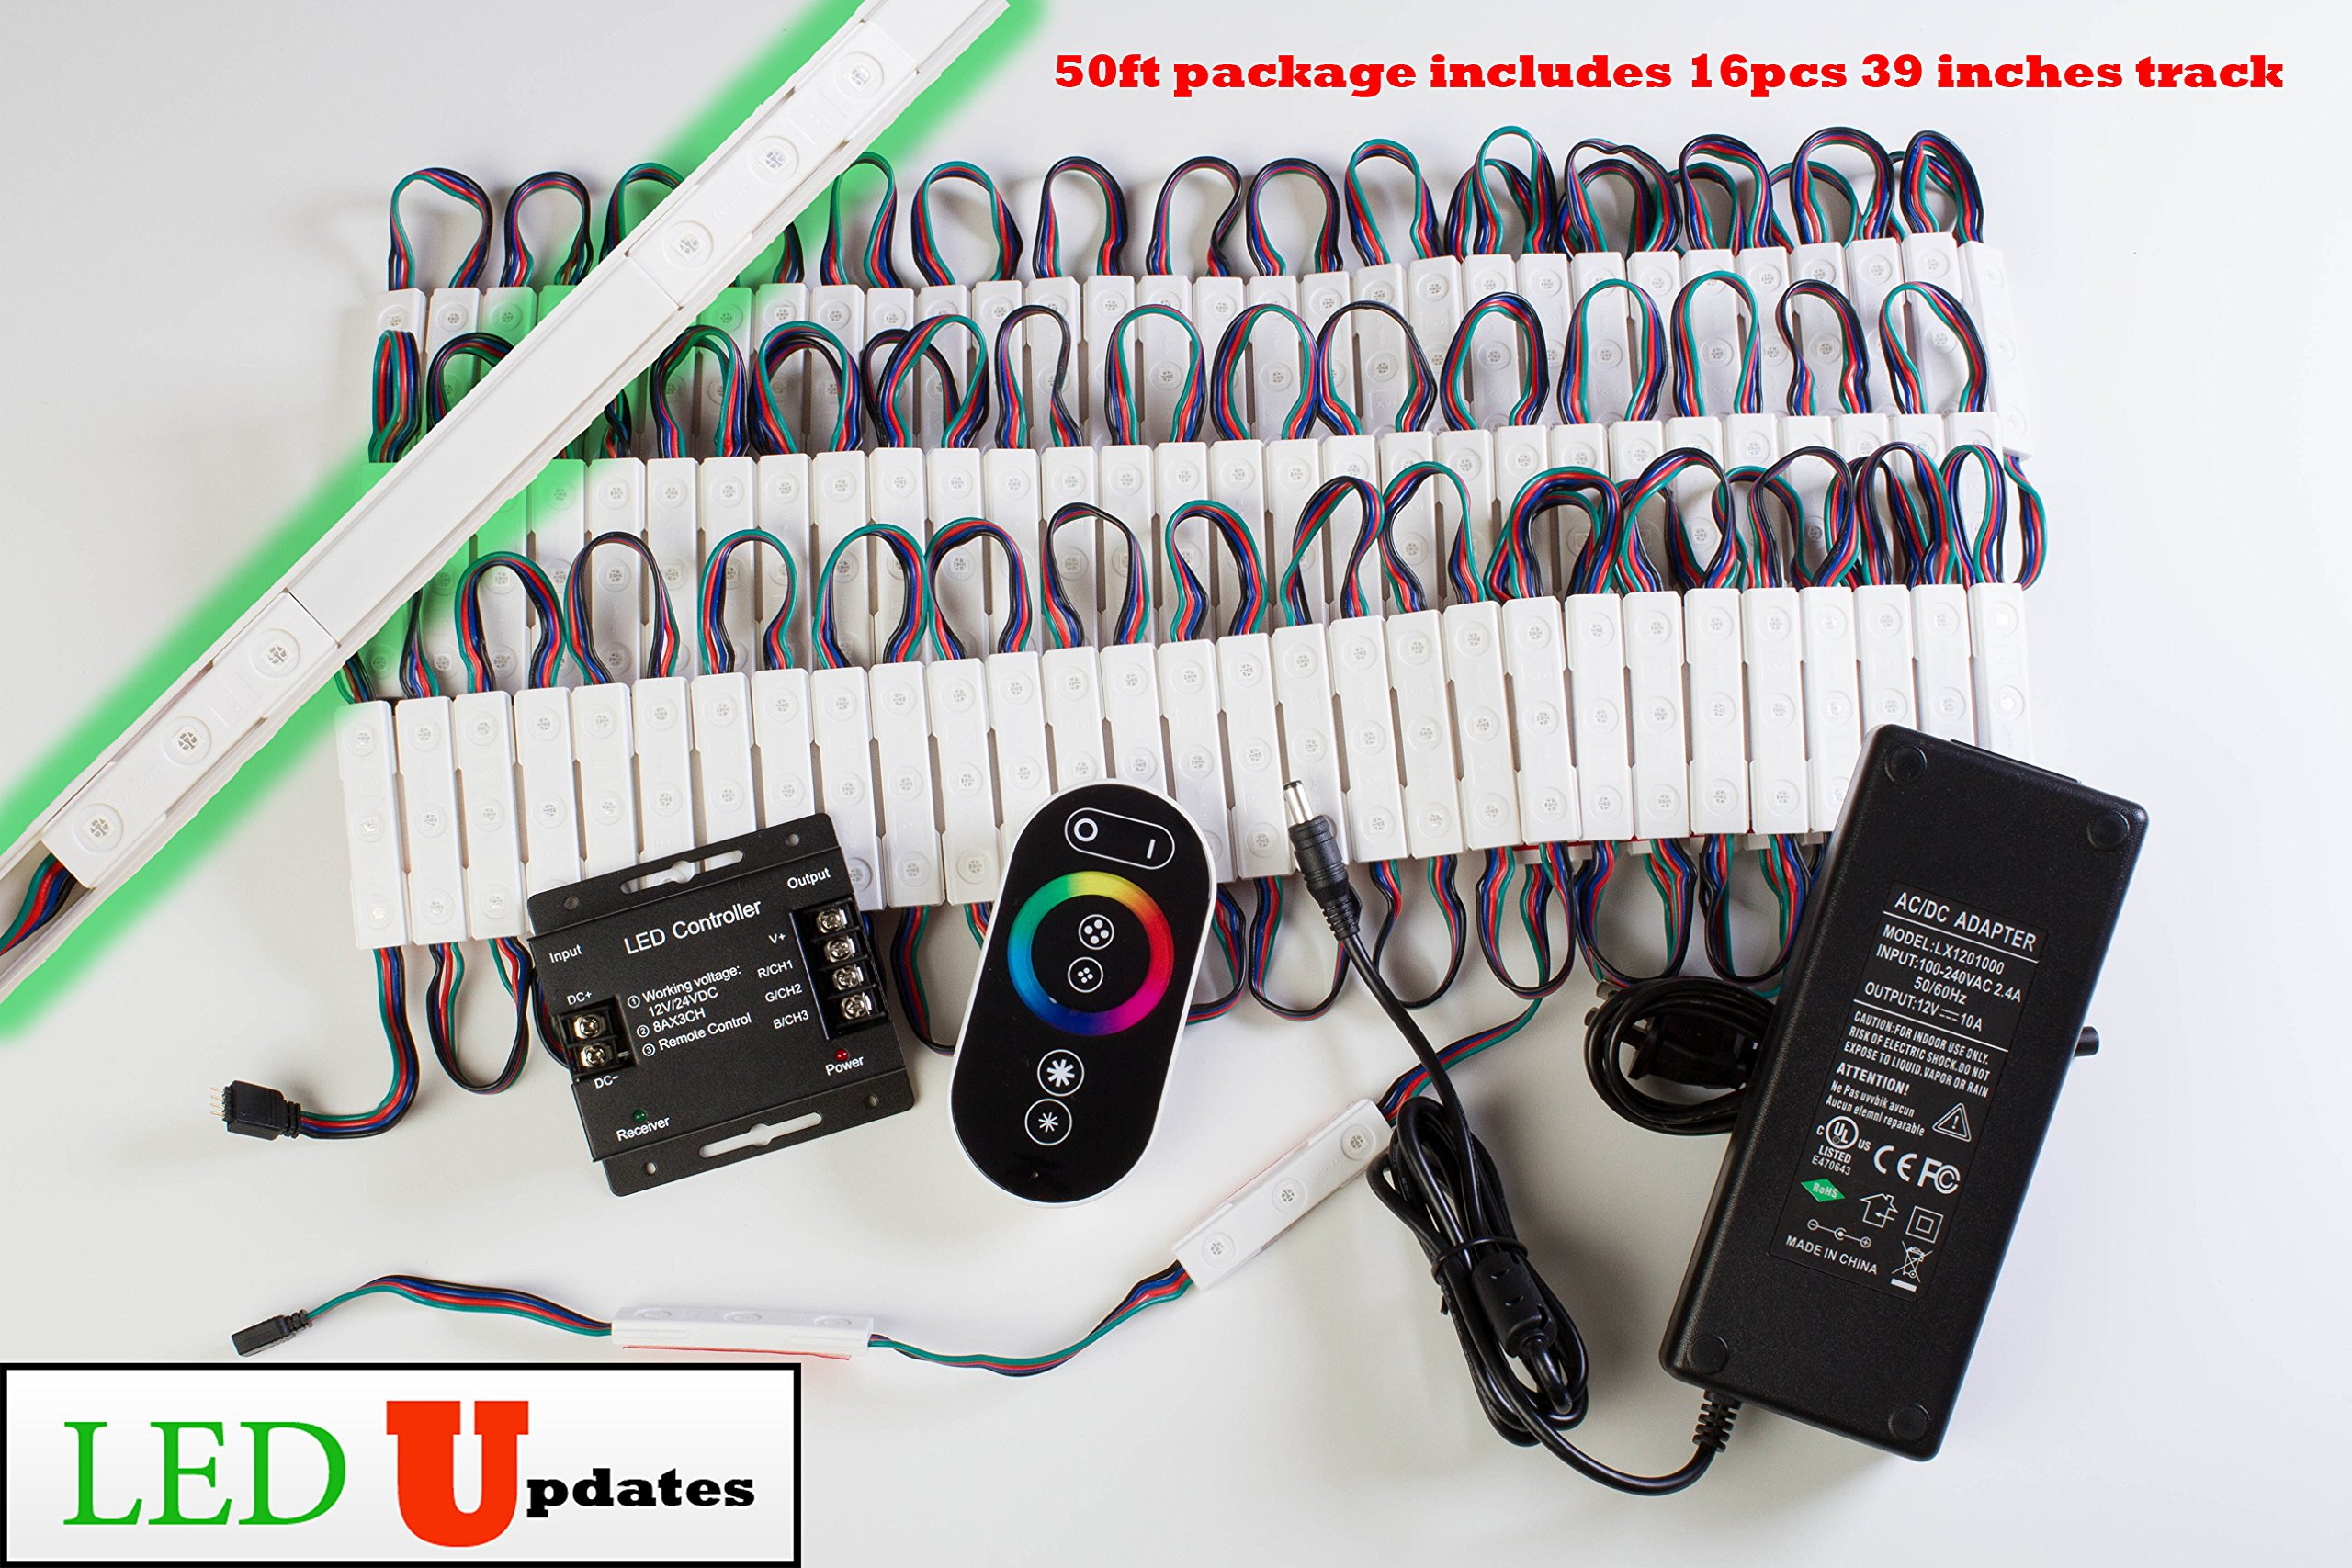 LEDUPDATES Color Change Storefront RGB LED Light with Track and UL Listed power supply (50ft)